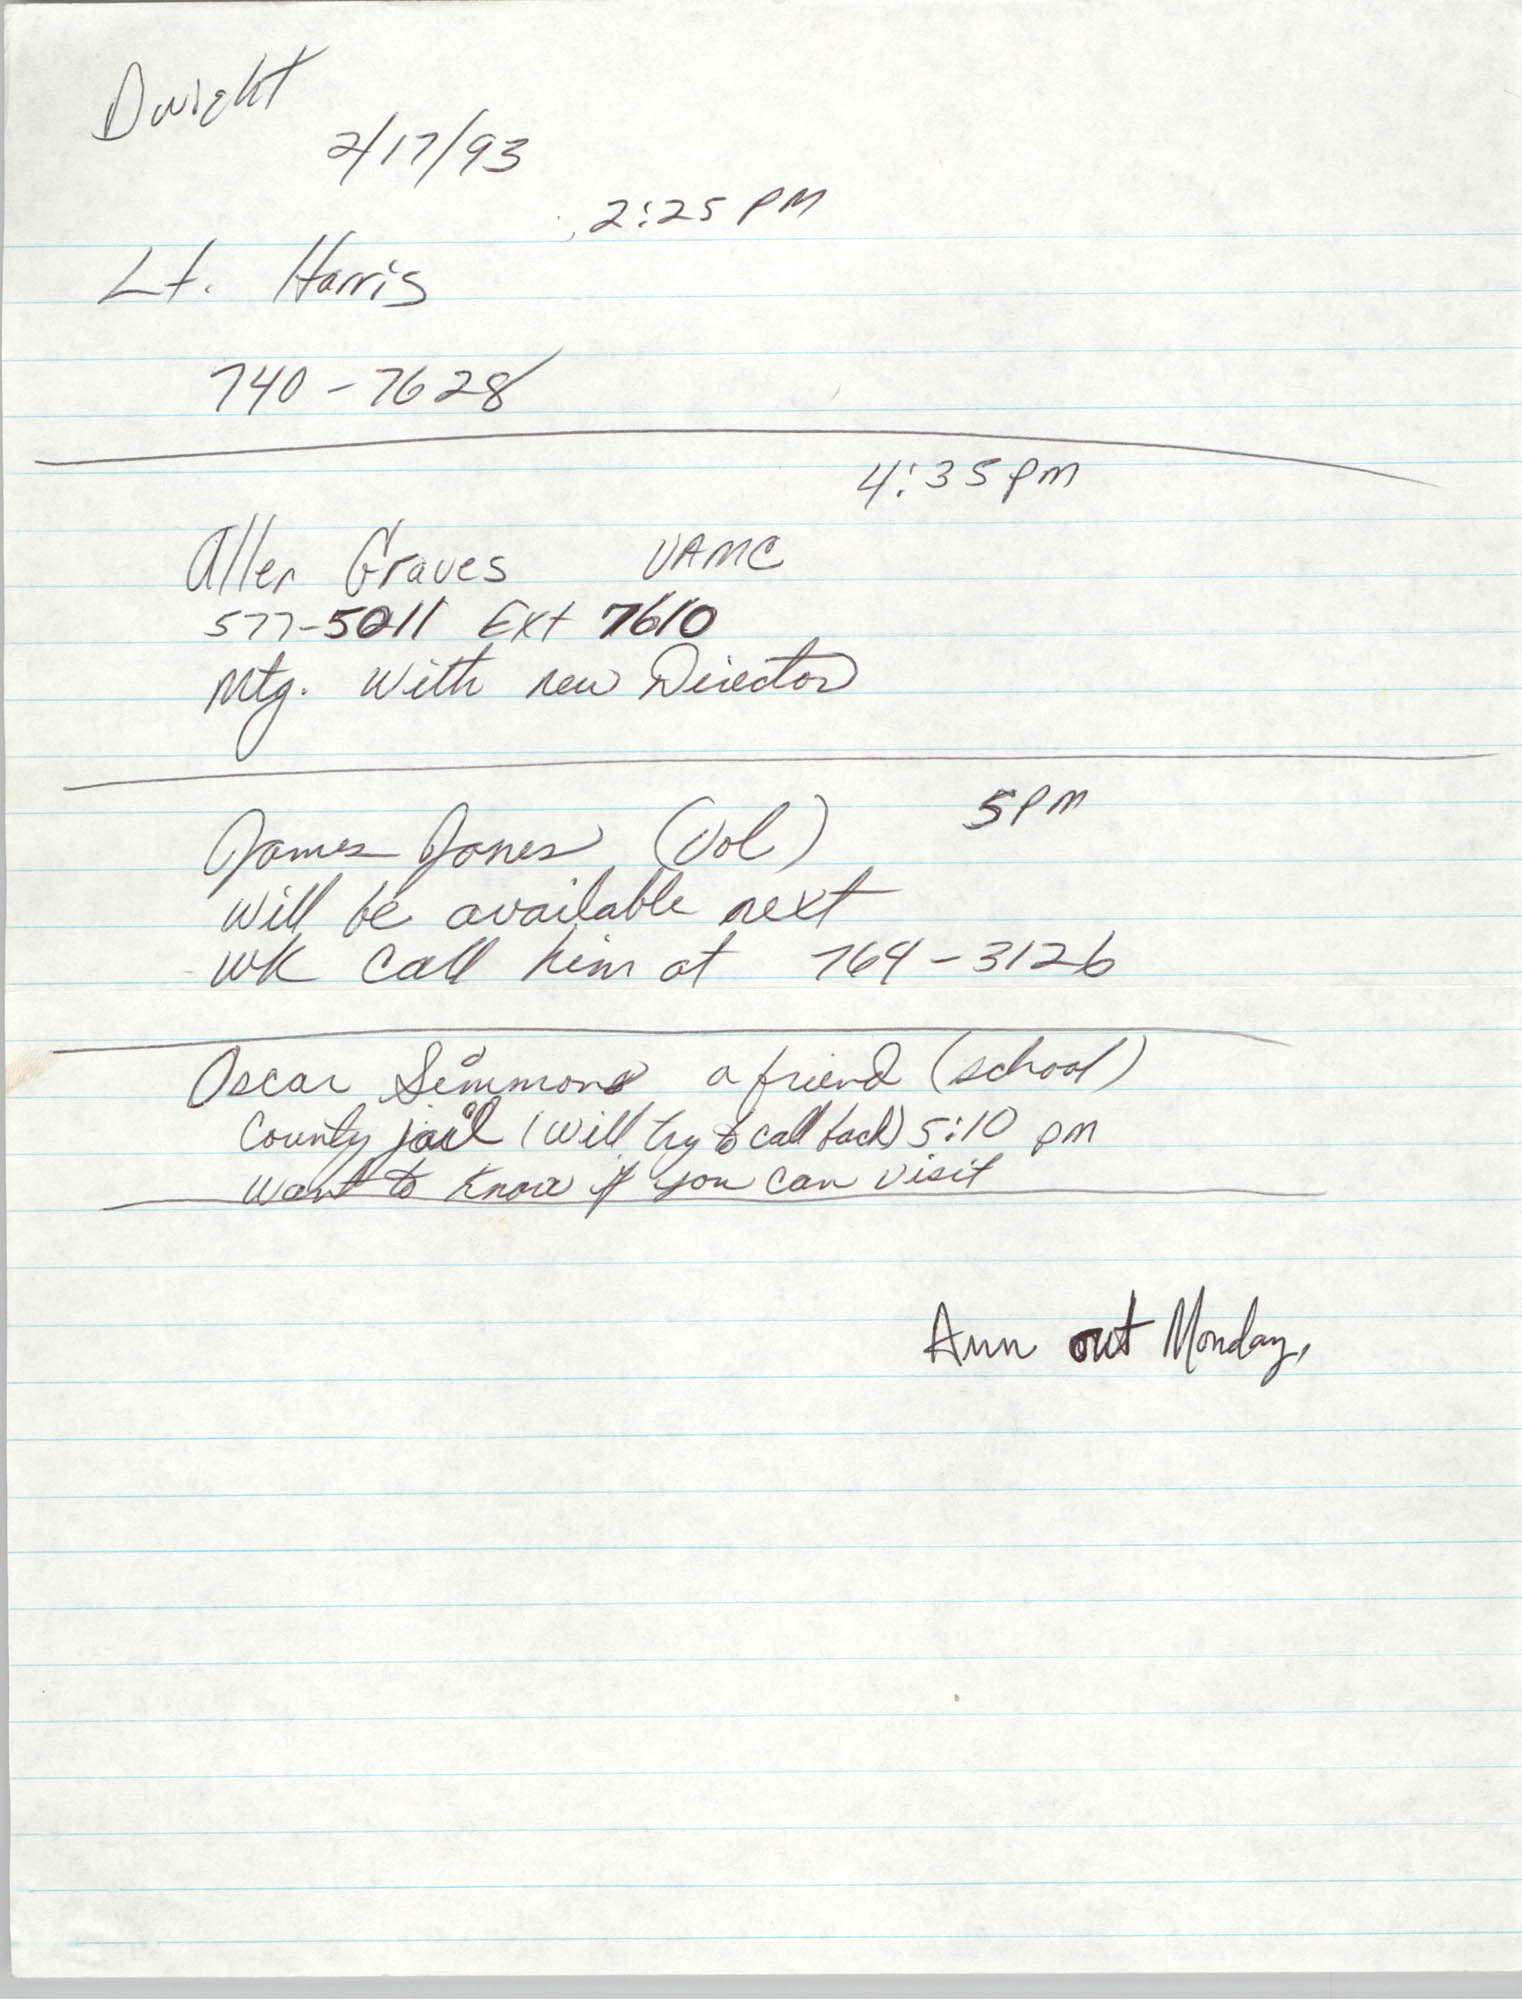 Handwritten Notes, Contact Information, February 17, 1993